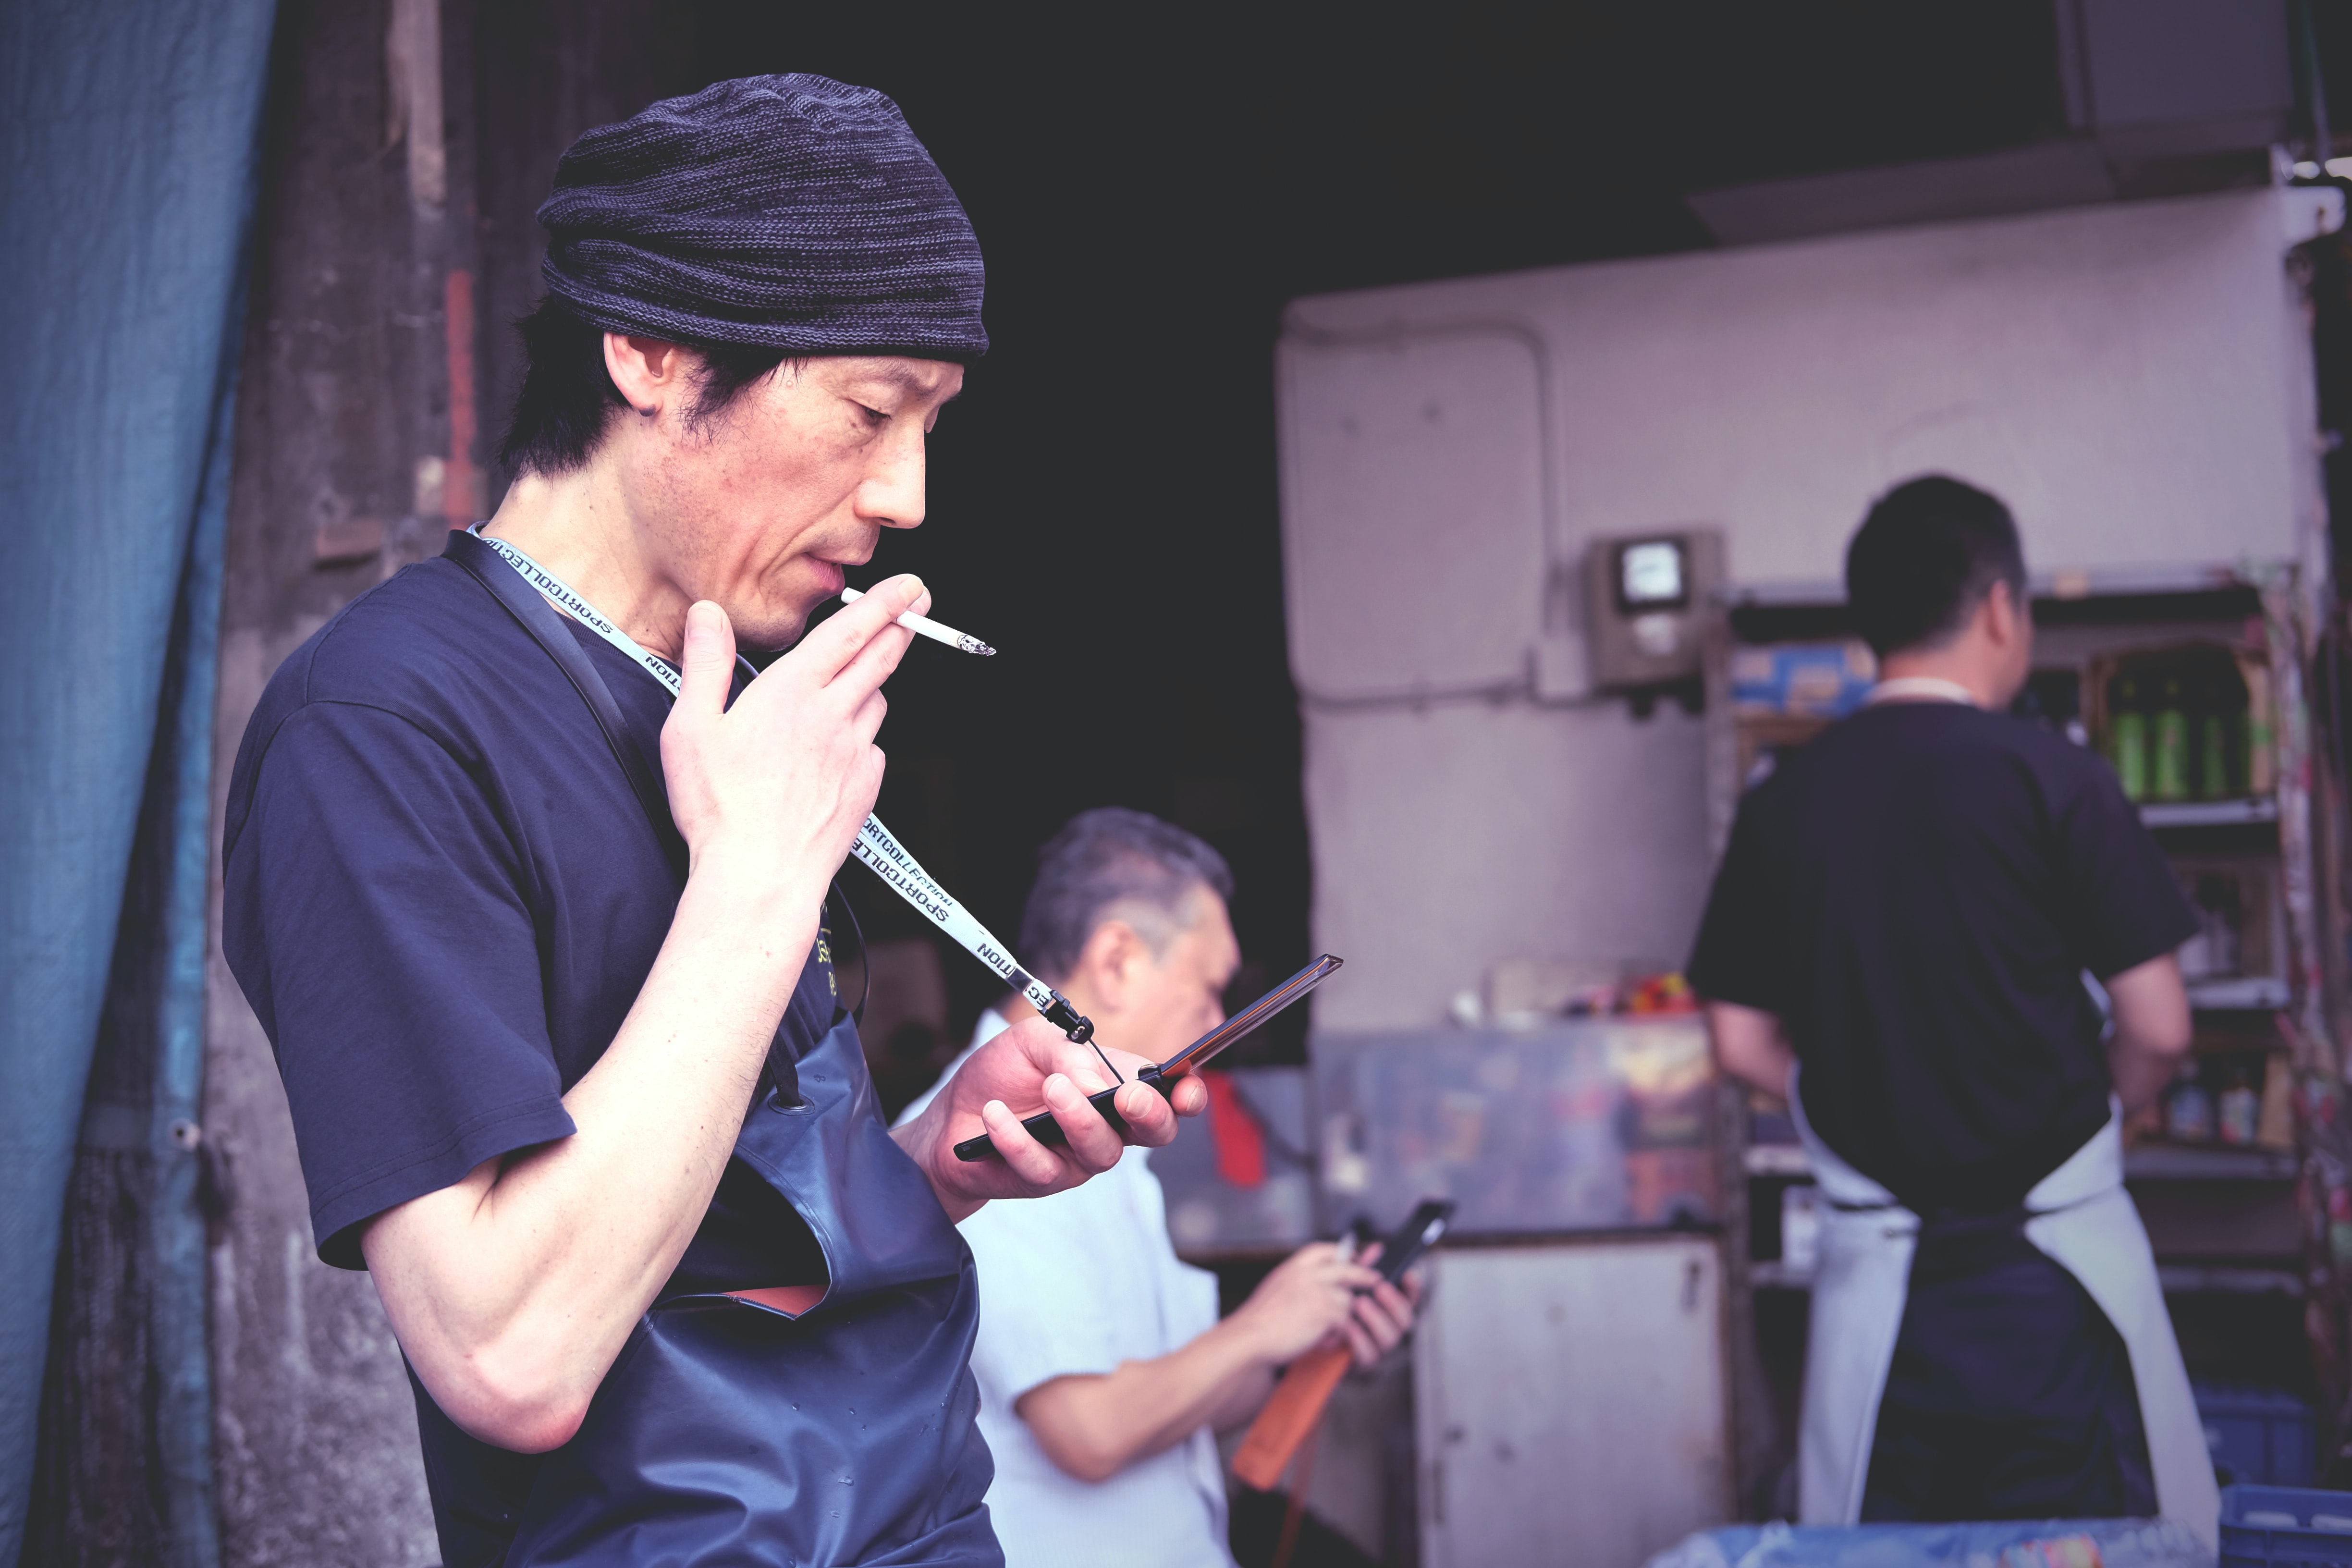 A man is smoking and looking at his phone in the foreground at Tsukiji Market.